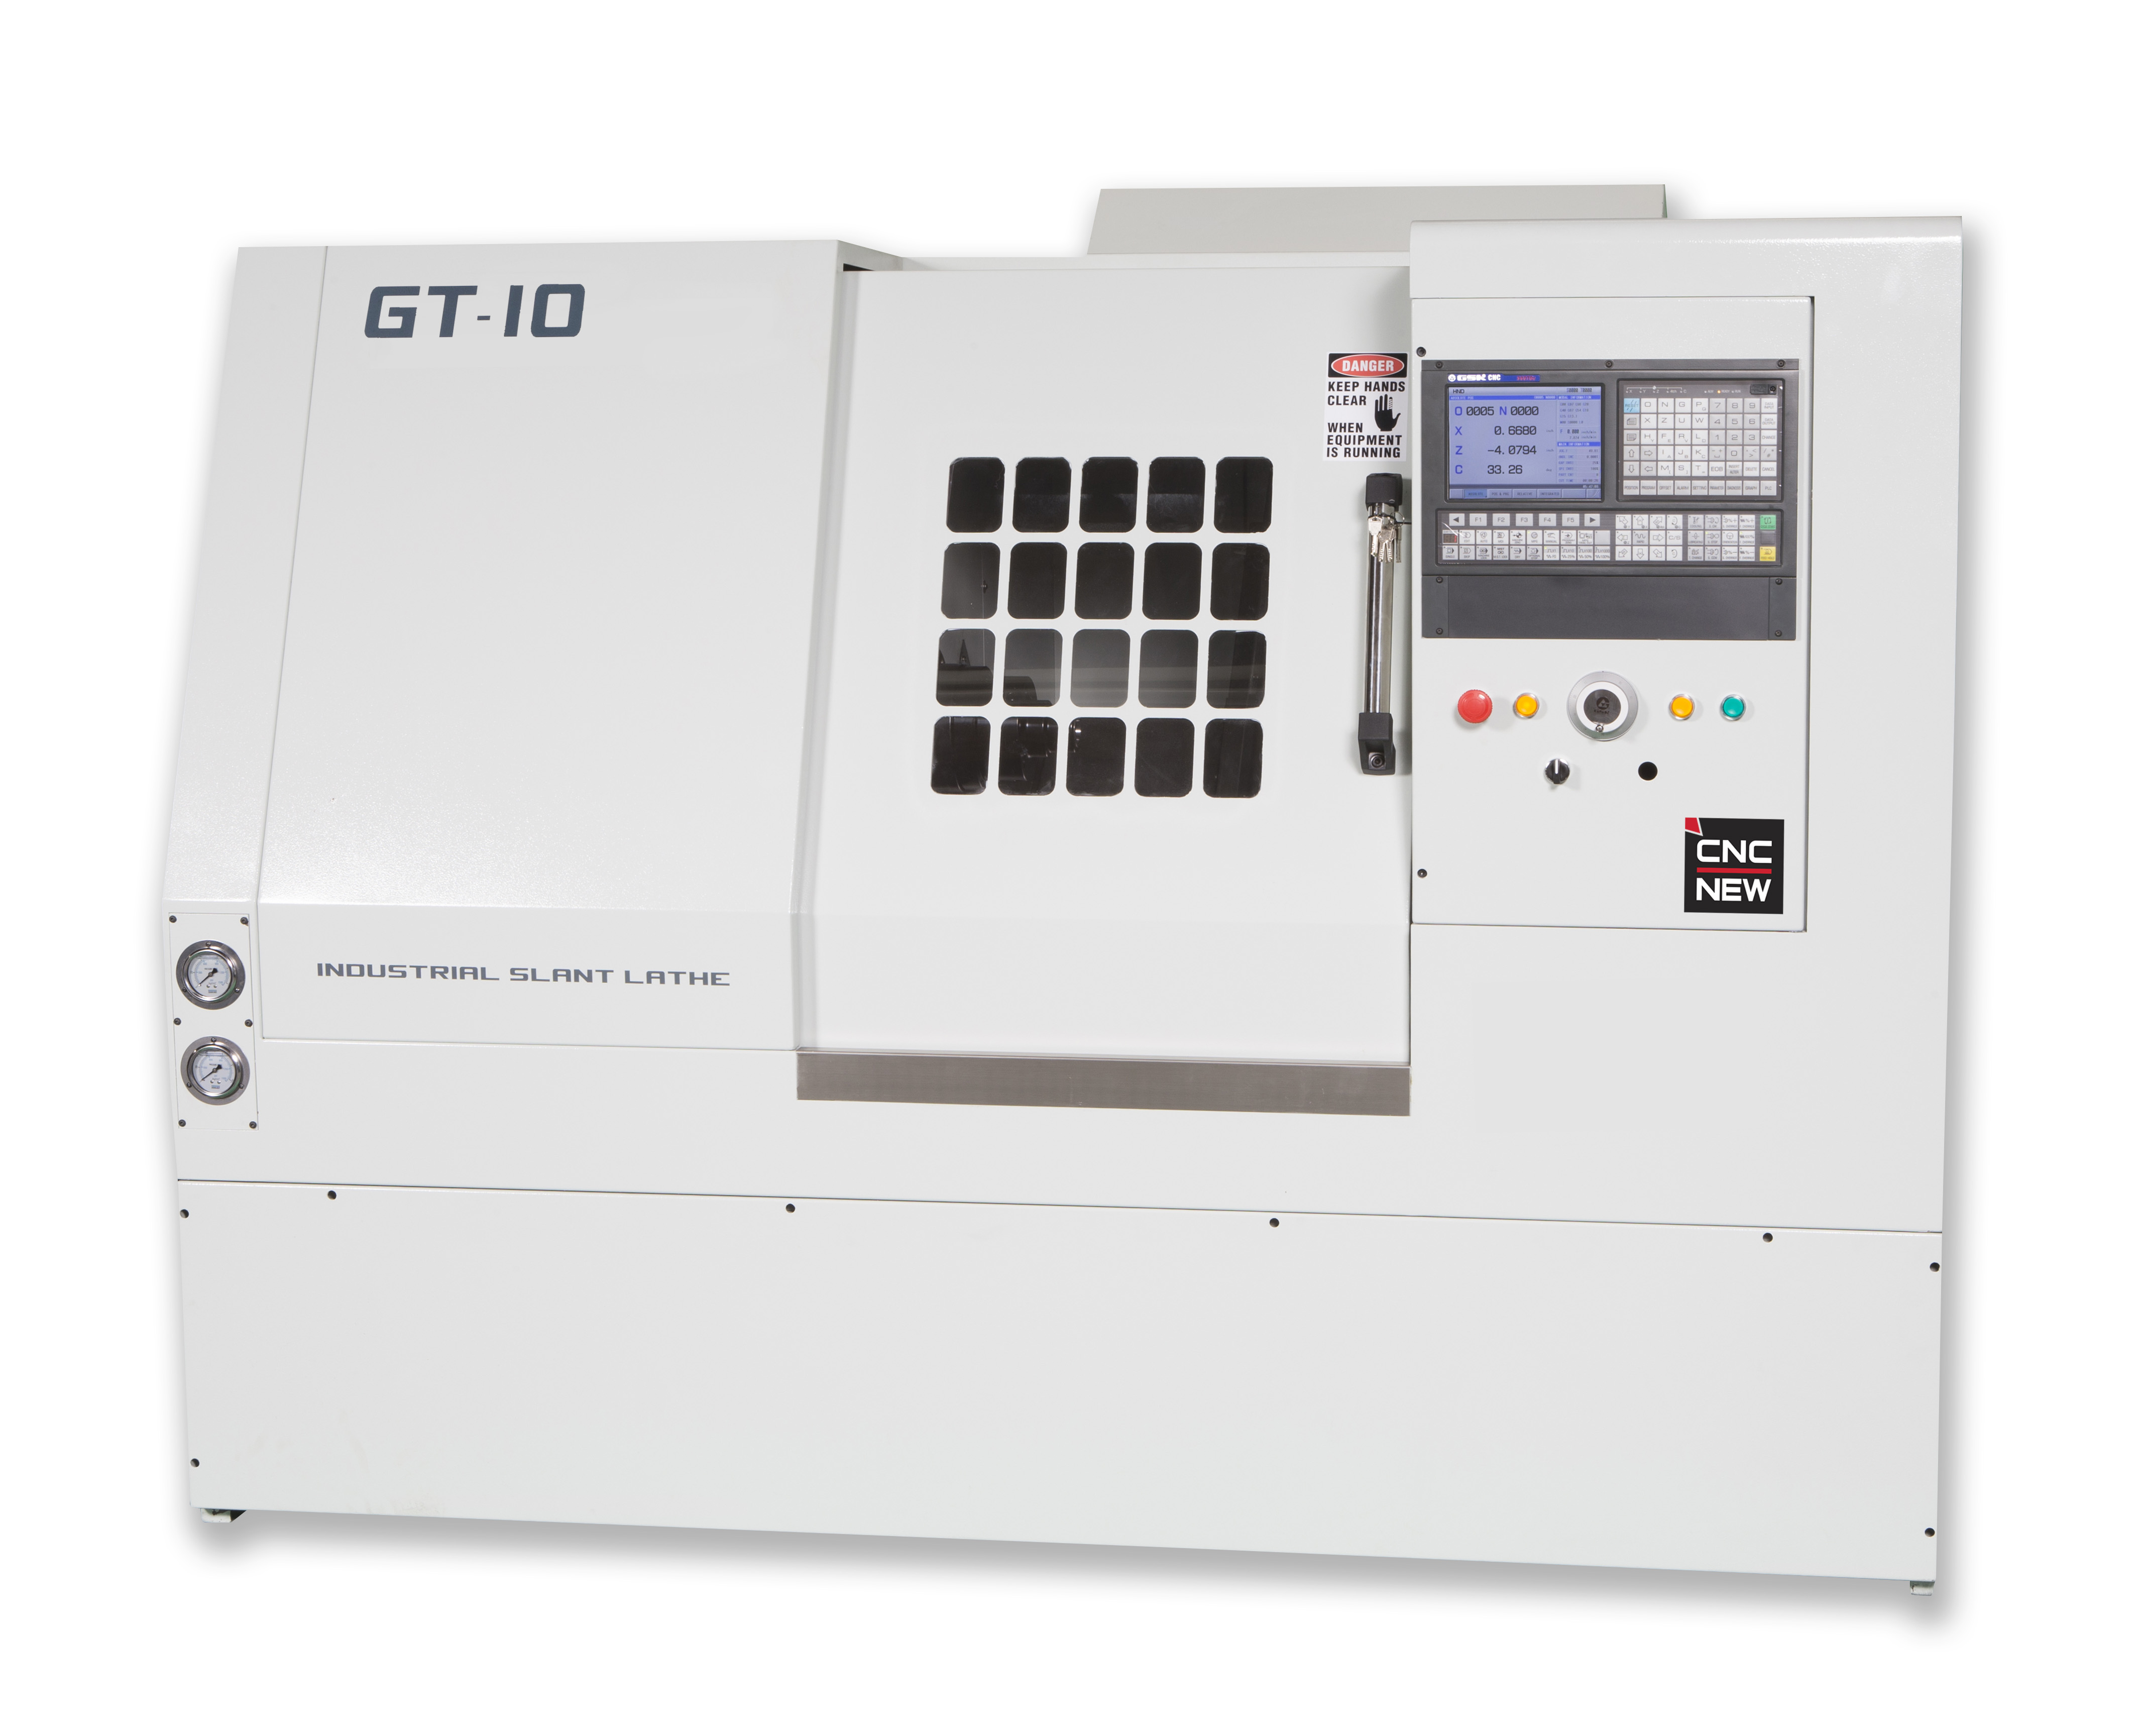 GT-10-RB08 Gang tool lathe with Robotic Arm Loader System. Available with static driven live tool spindles.